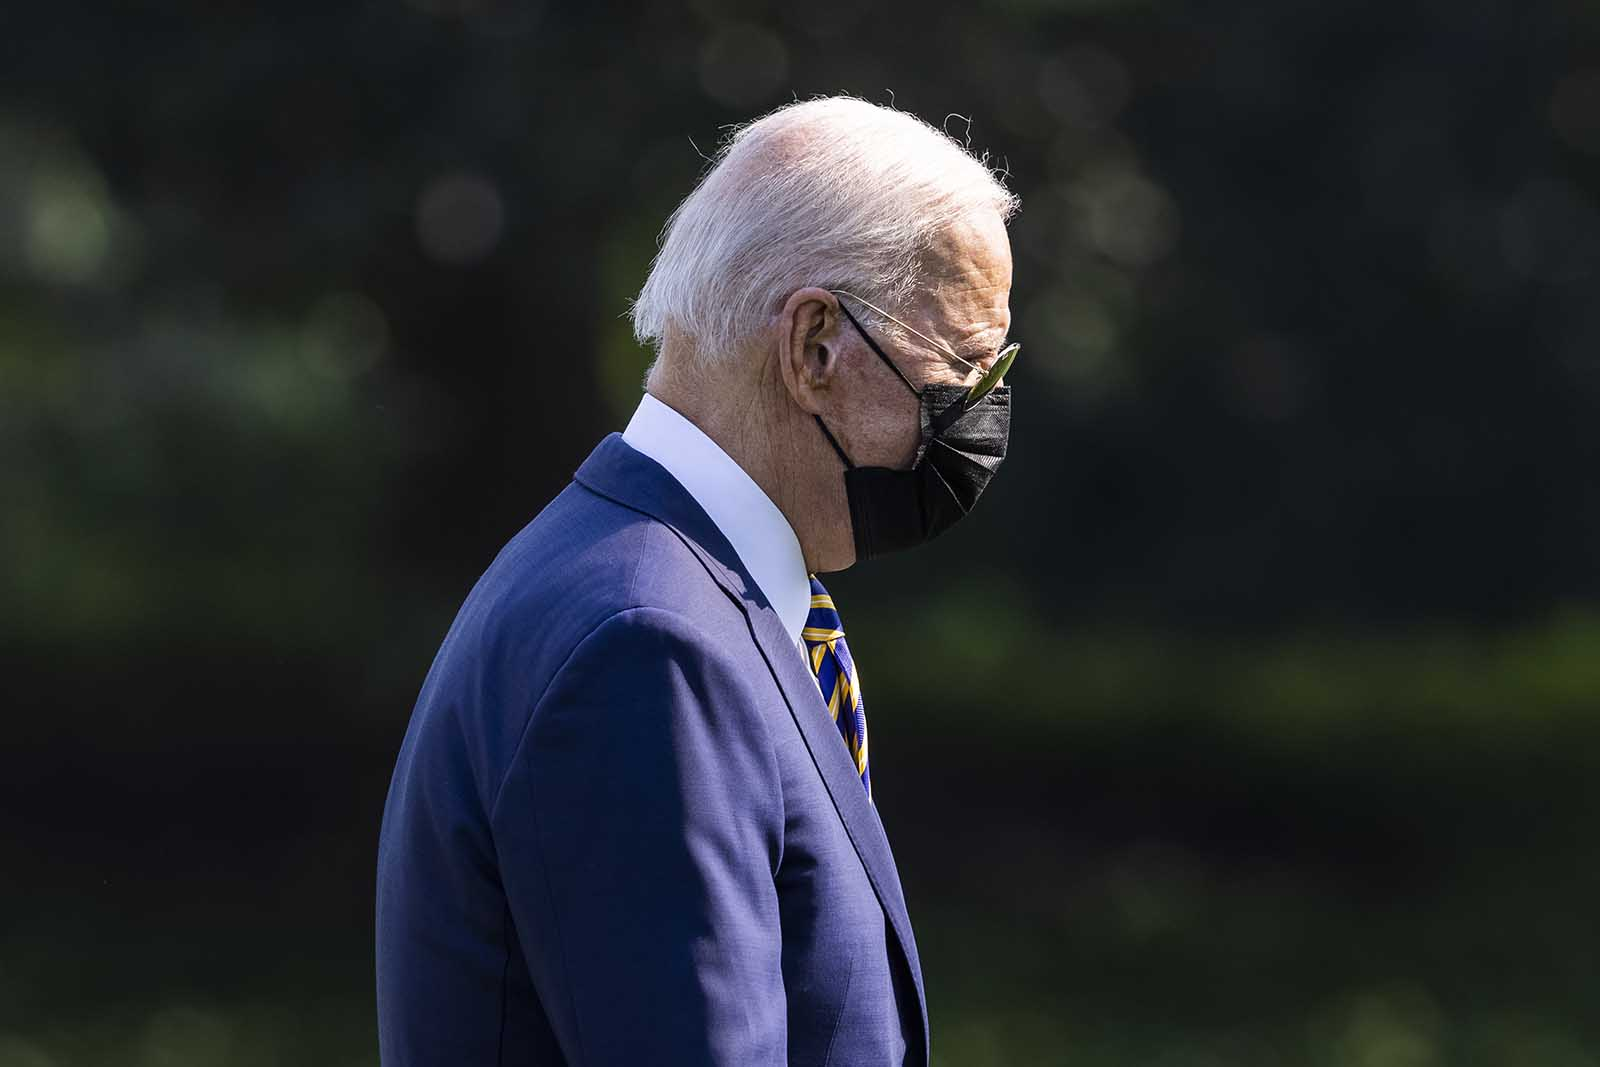 President Joe Biden walks on the South Lawn of the White House in Washington, DC on Wednesday, July 28.